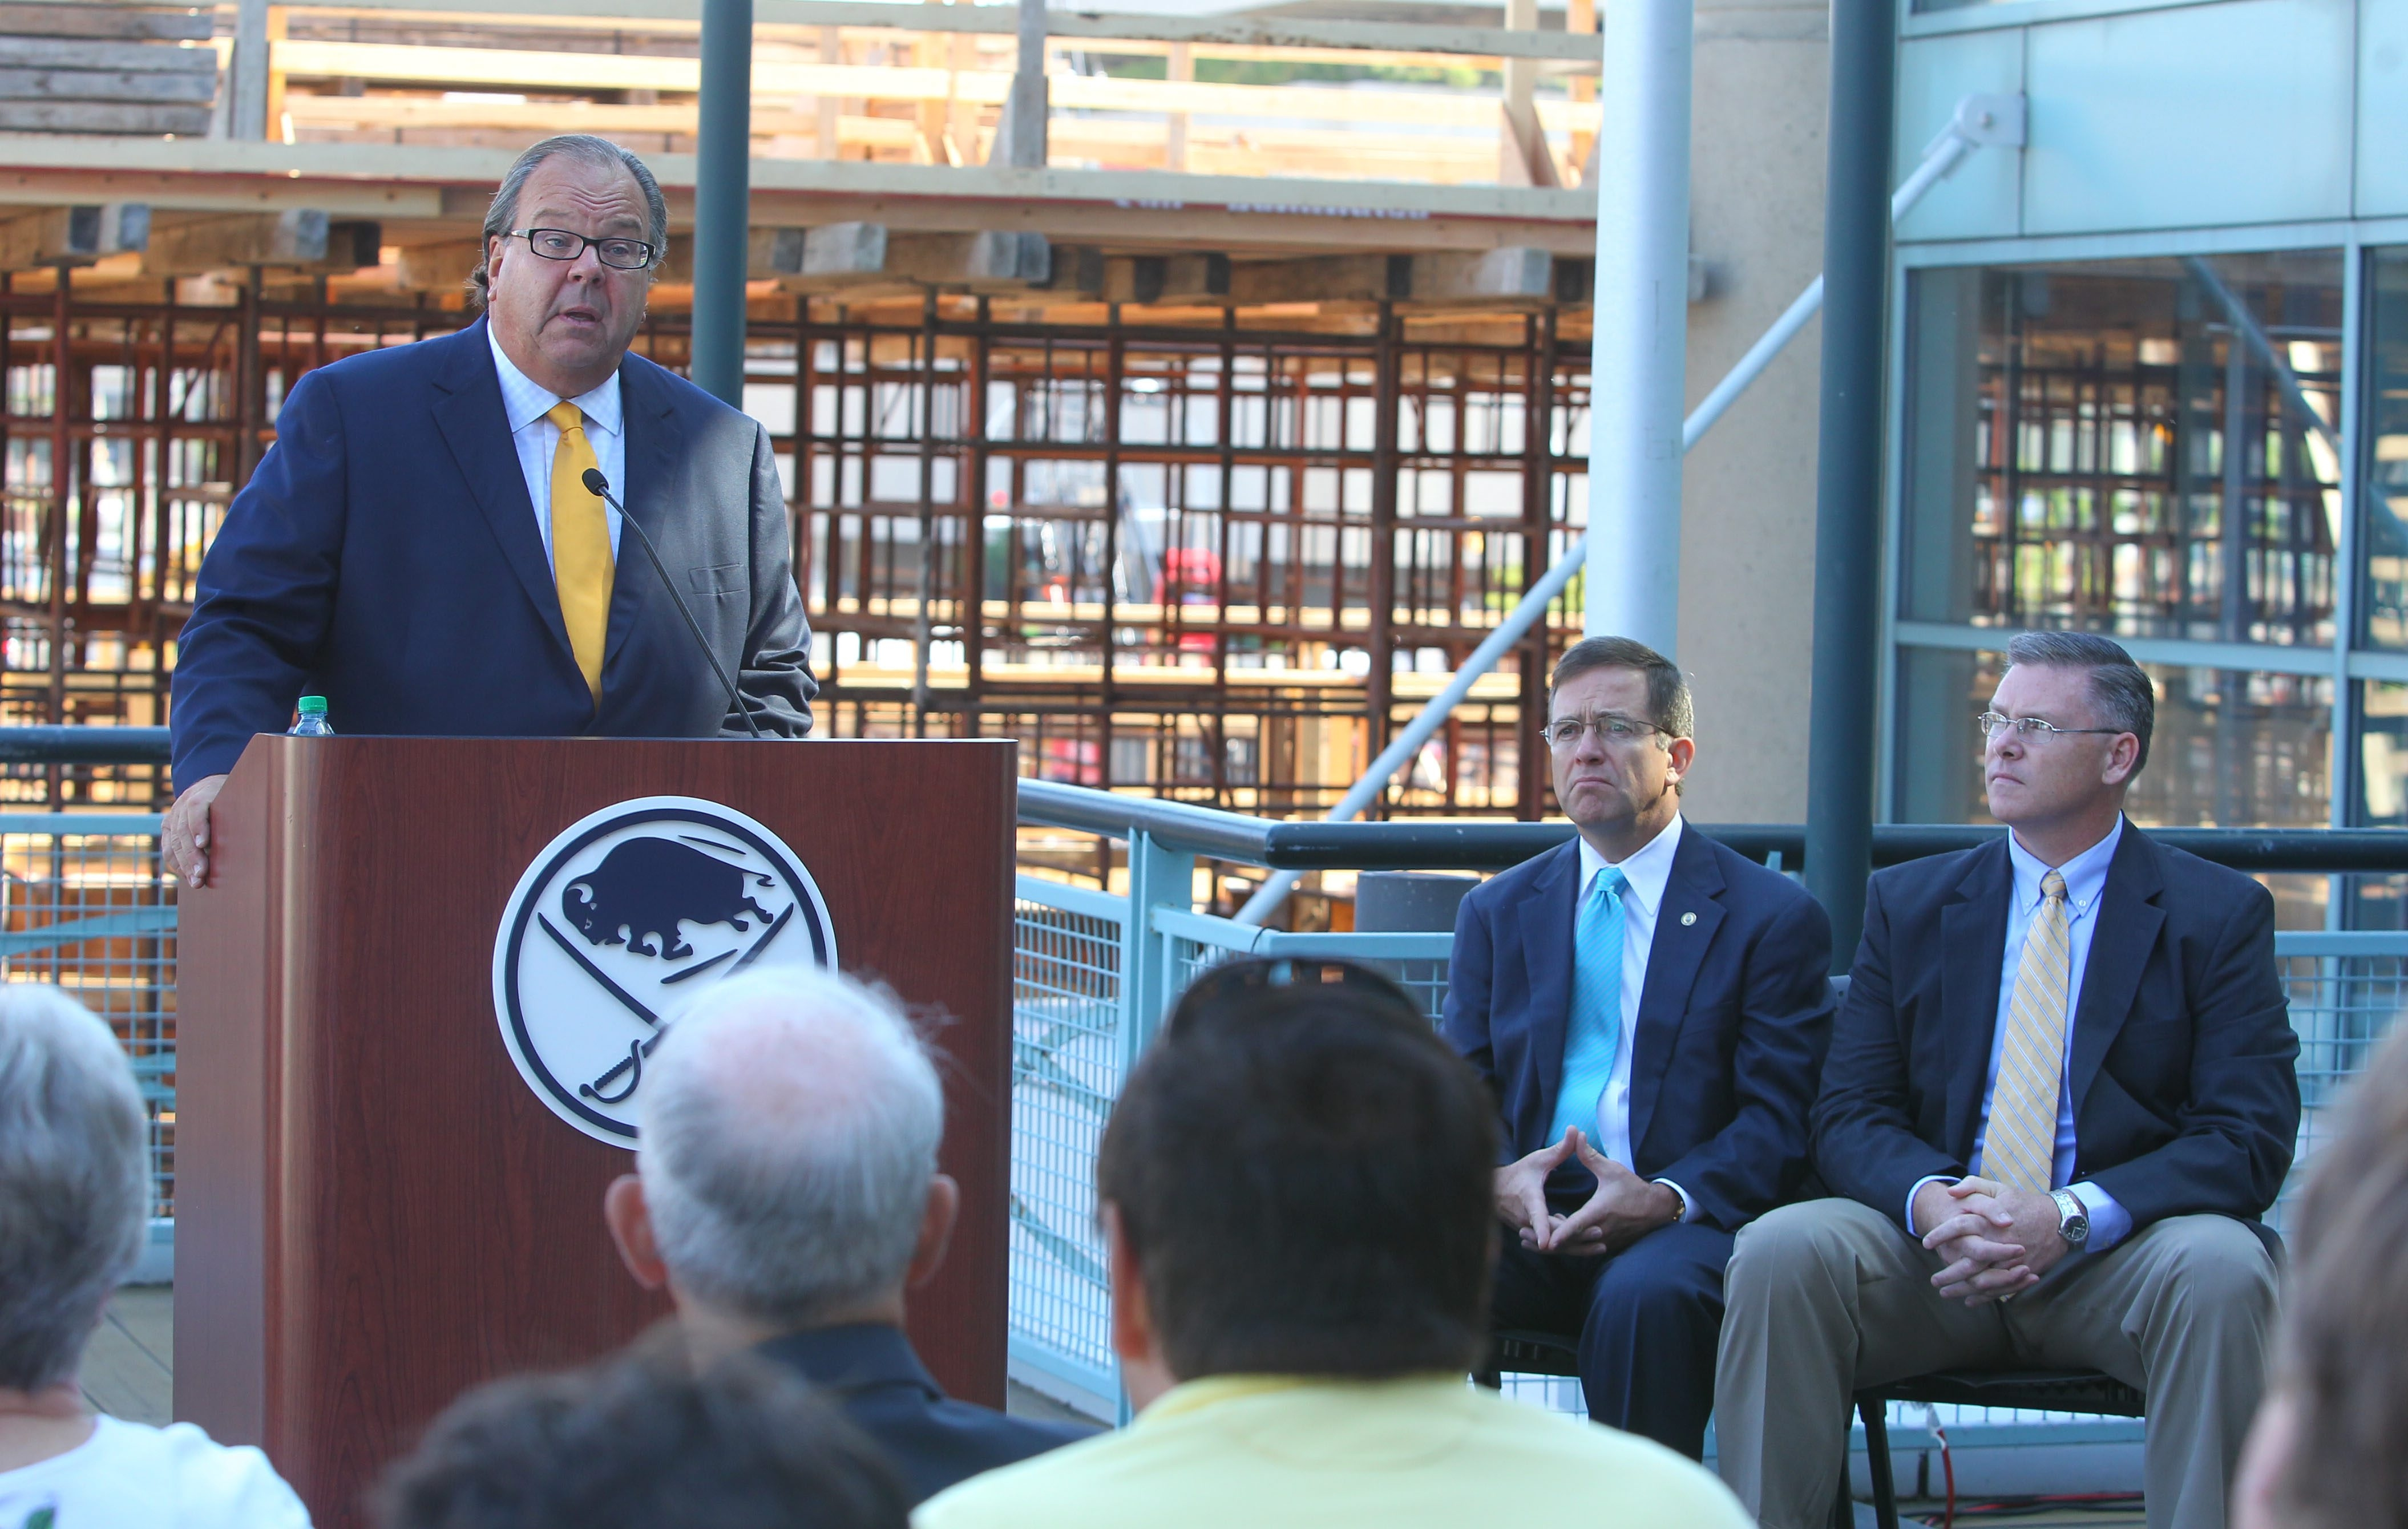 HarborCenter President John Koelmel speaks with reporters and members from Canisius College at the First Niagara Center today as he announced an agreement to have the college play all their hockey home games at the new facility when it opens in 2014.  At right is college president John J. Hurley and athletic director Bill Maher.